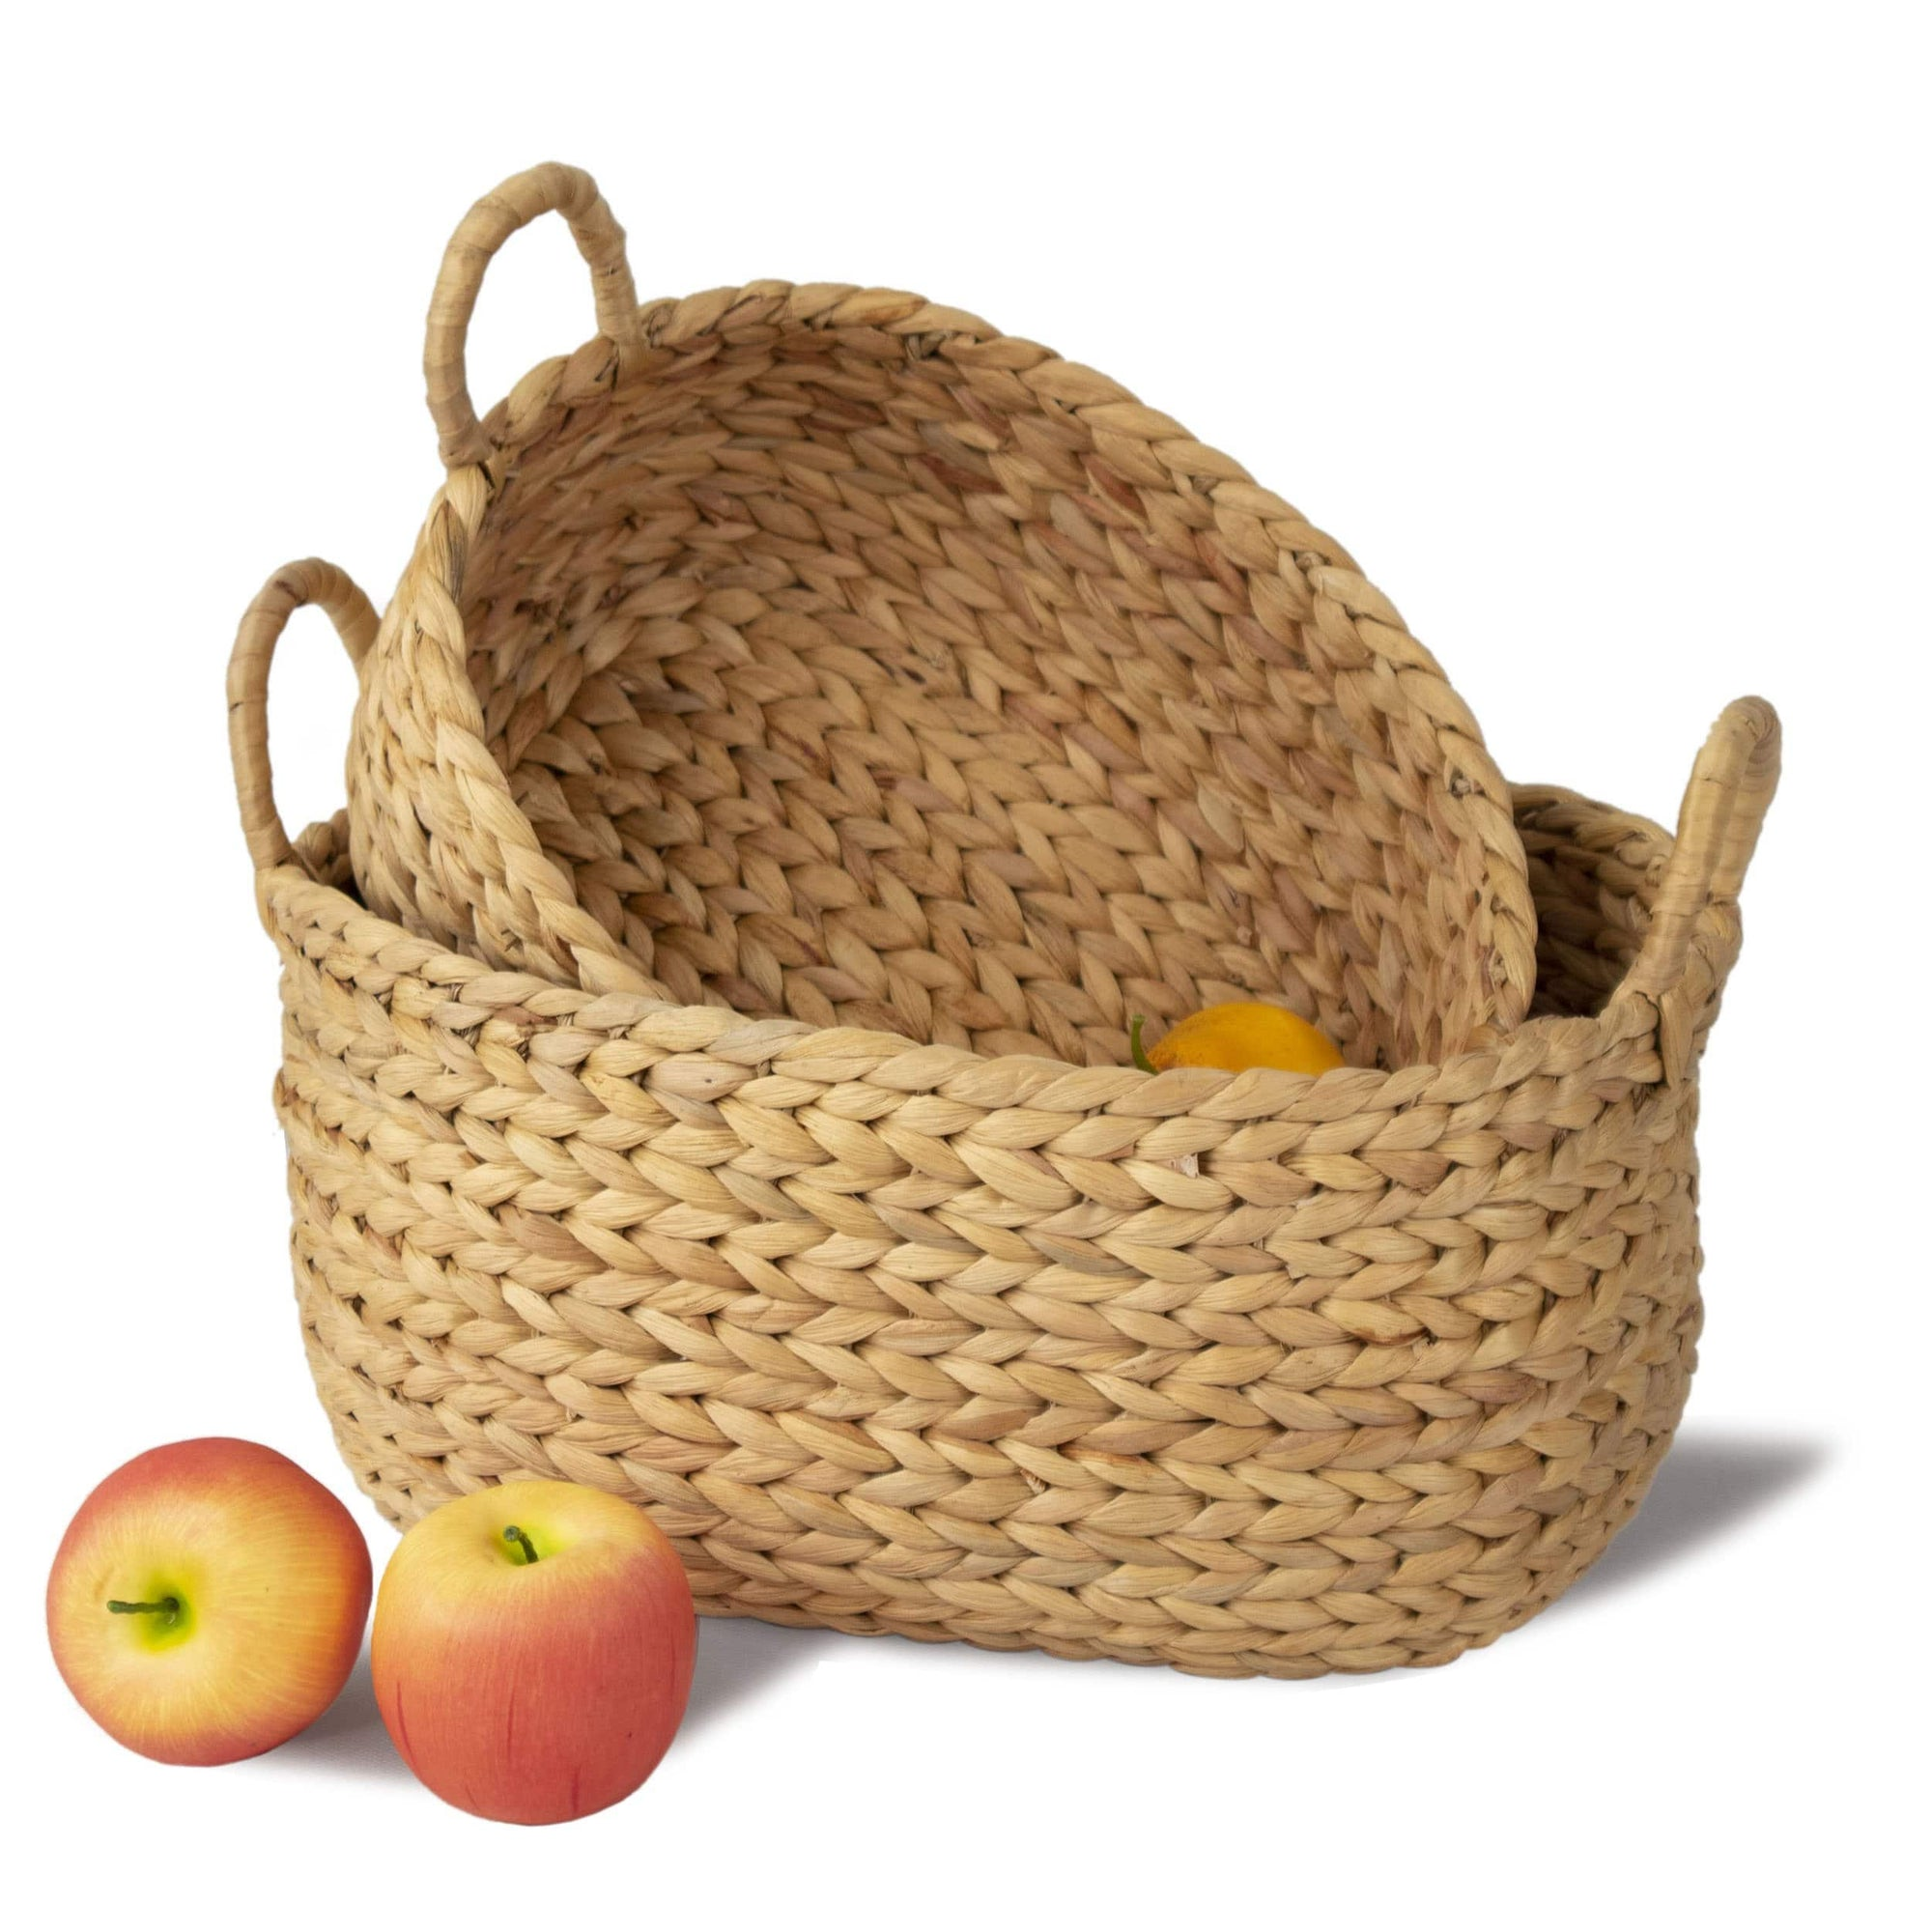 Made Terra Storage Box Natural Nesting Oval Wicker Baskets w Handles (Set 2) | Decorative Hamper Basket Laundry, ToyOrganizer